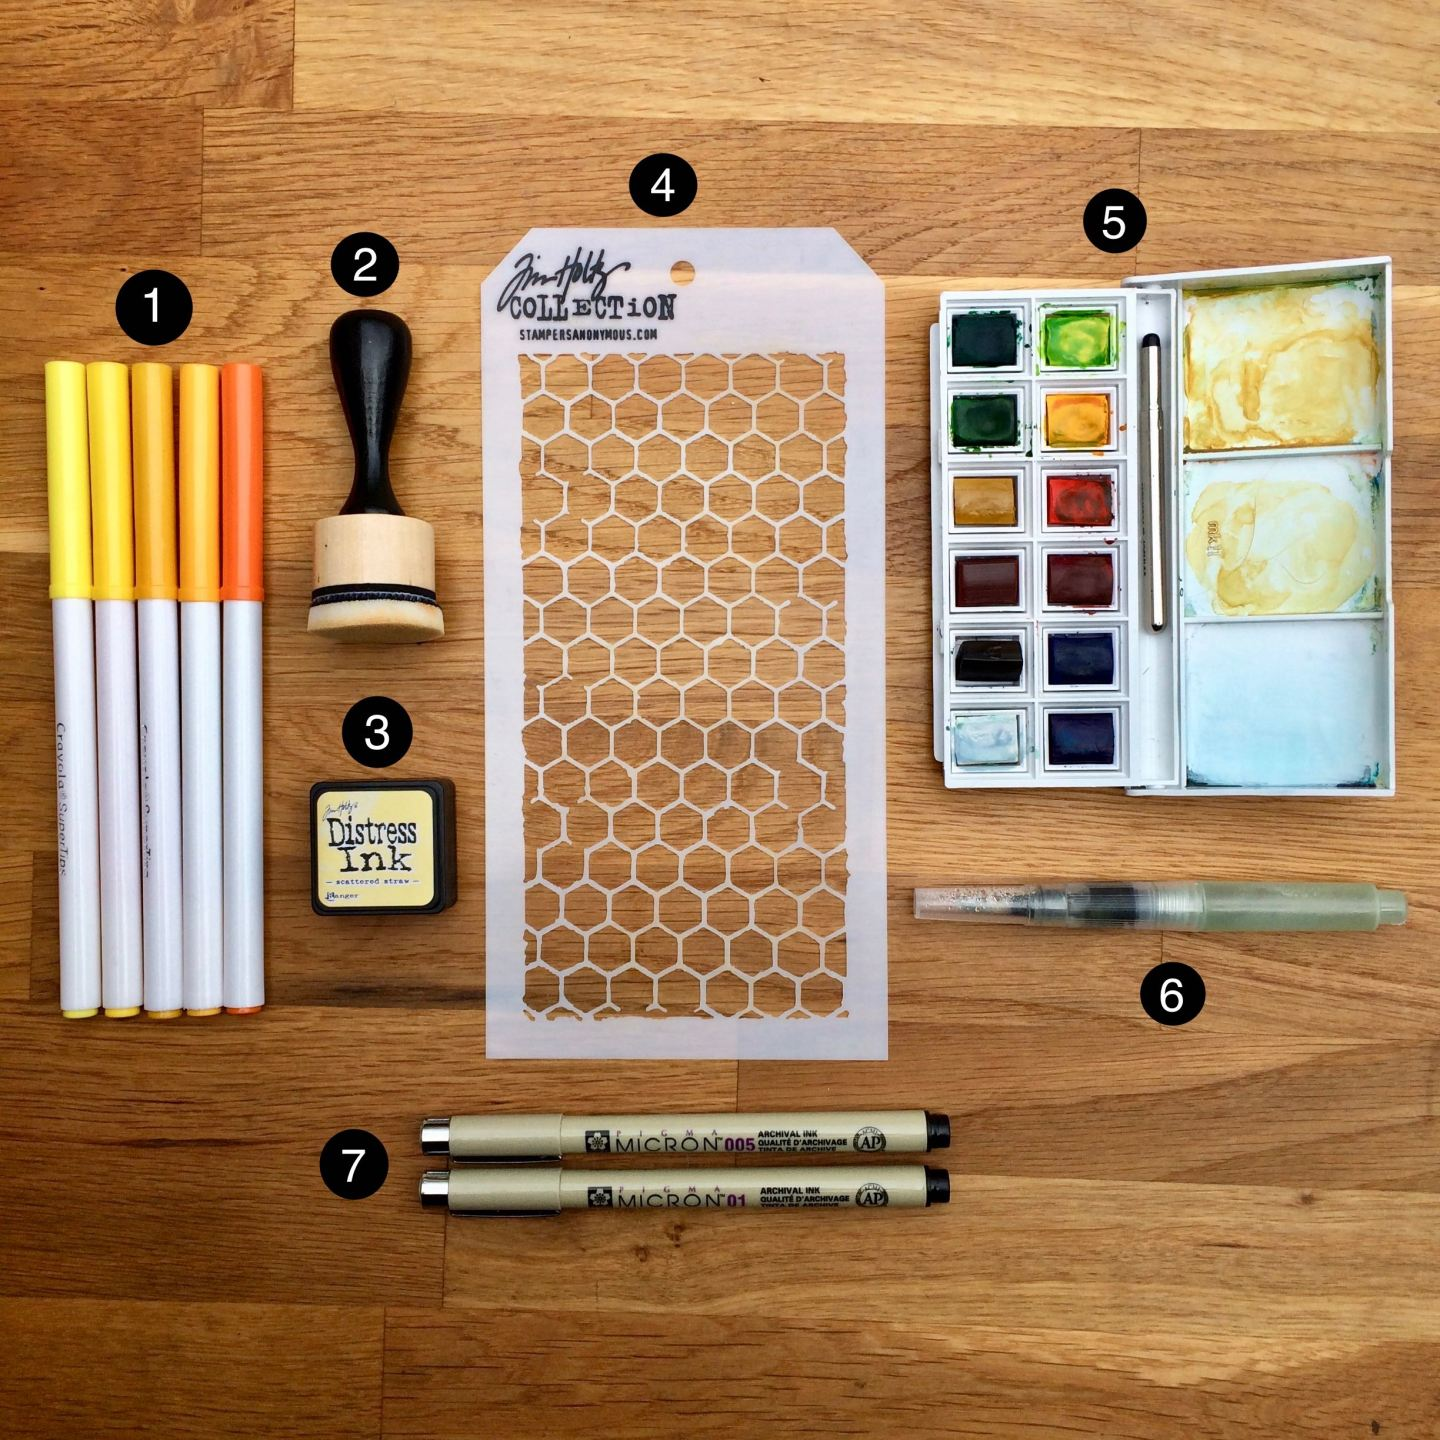 Honeycomb & Bee materials